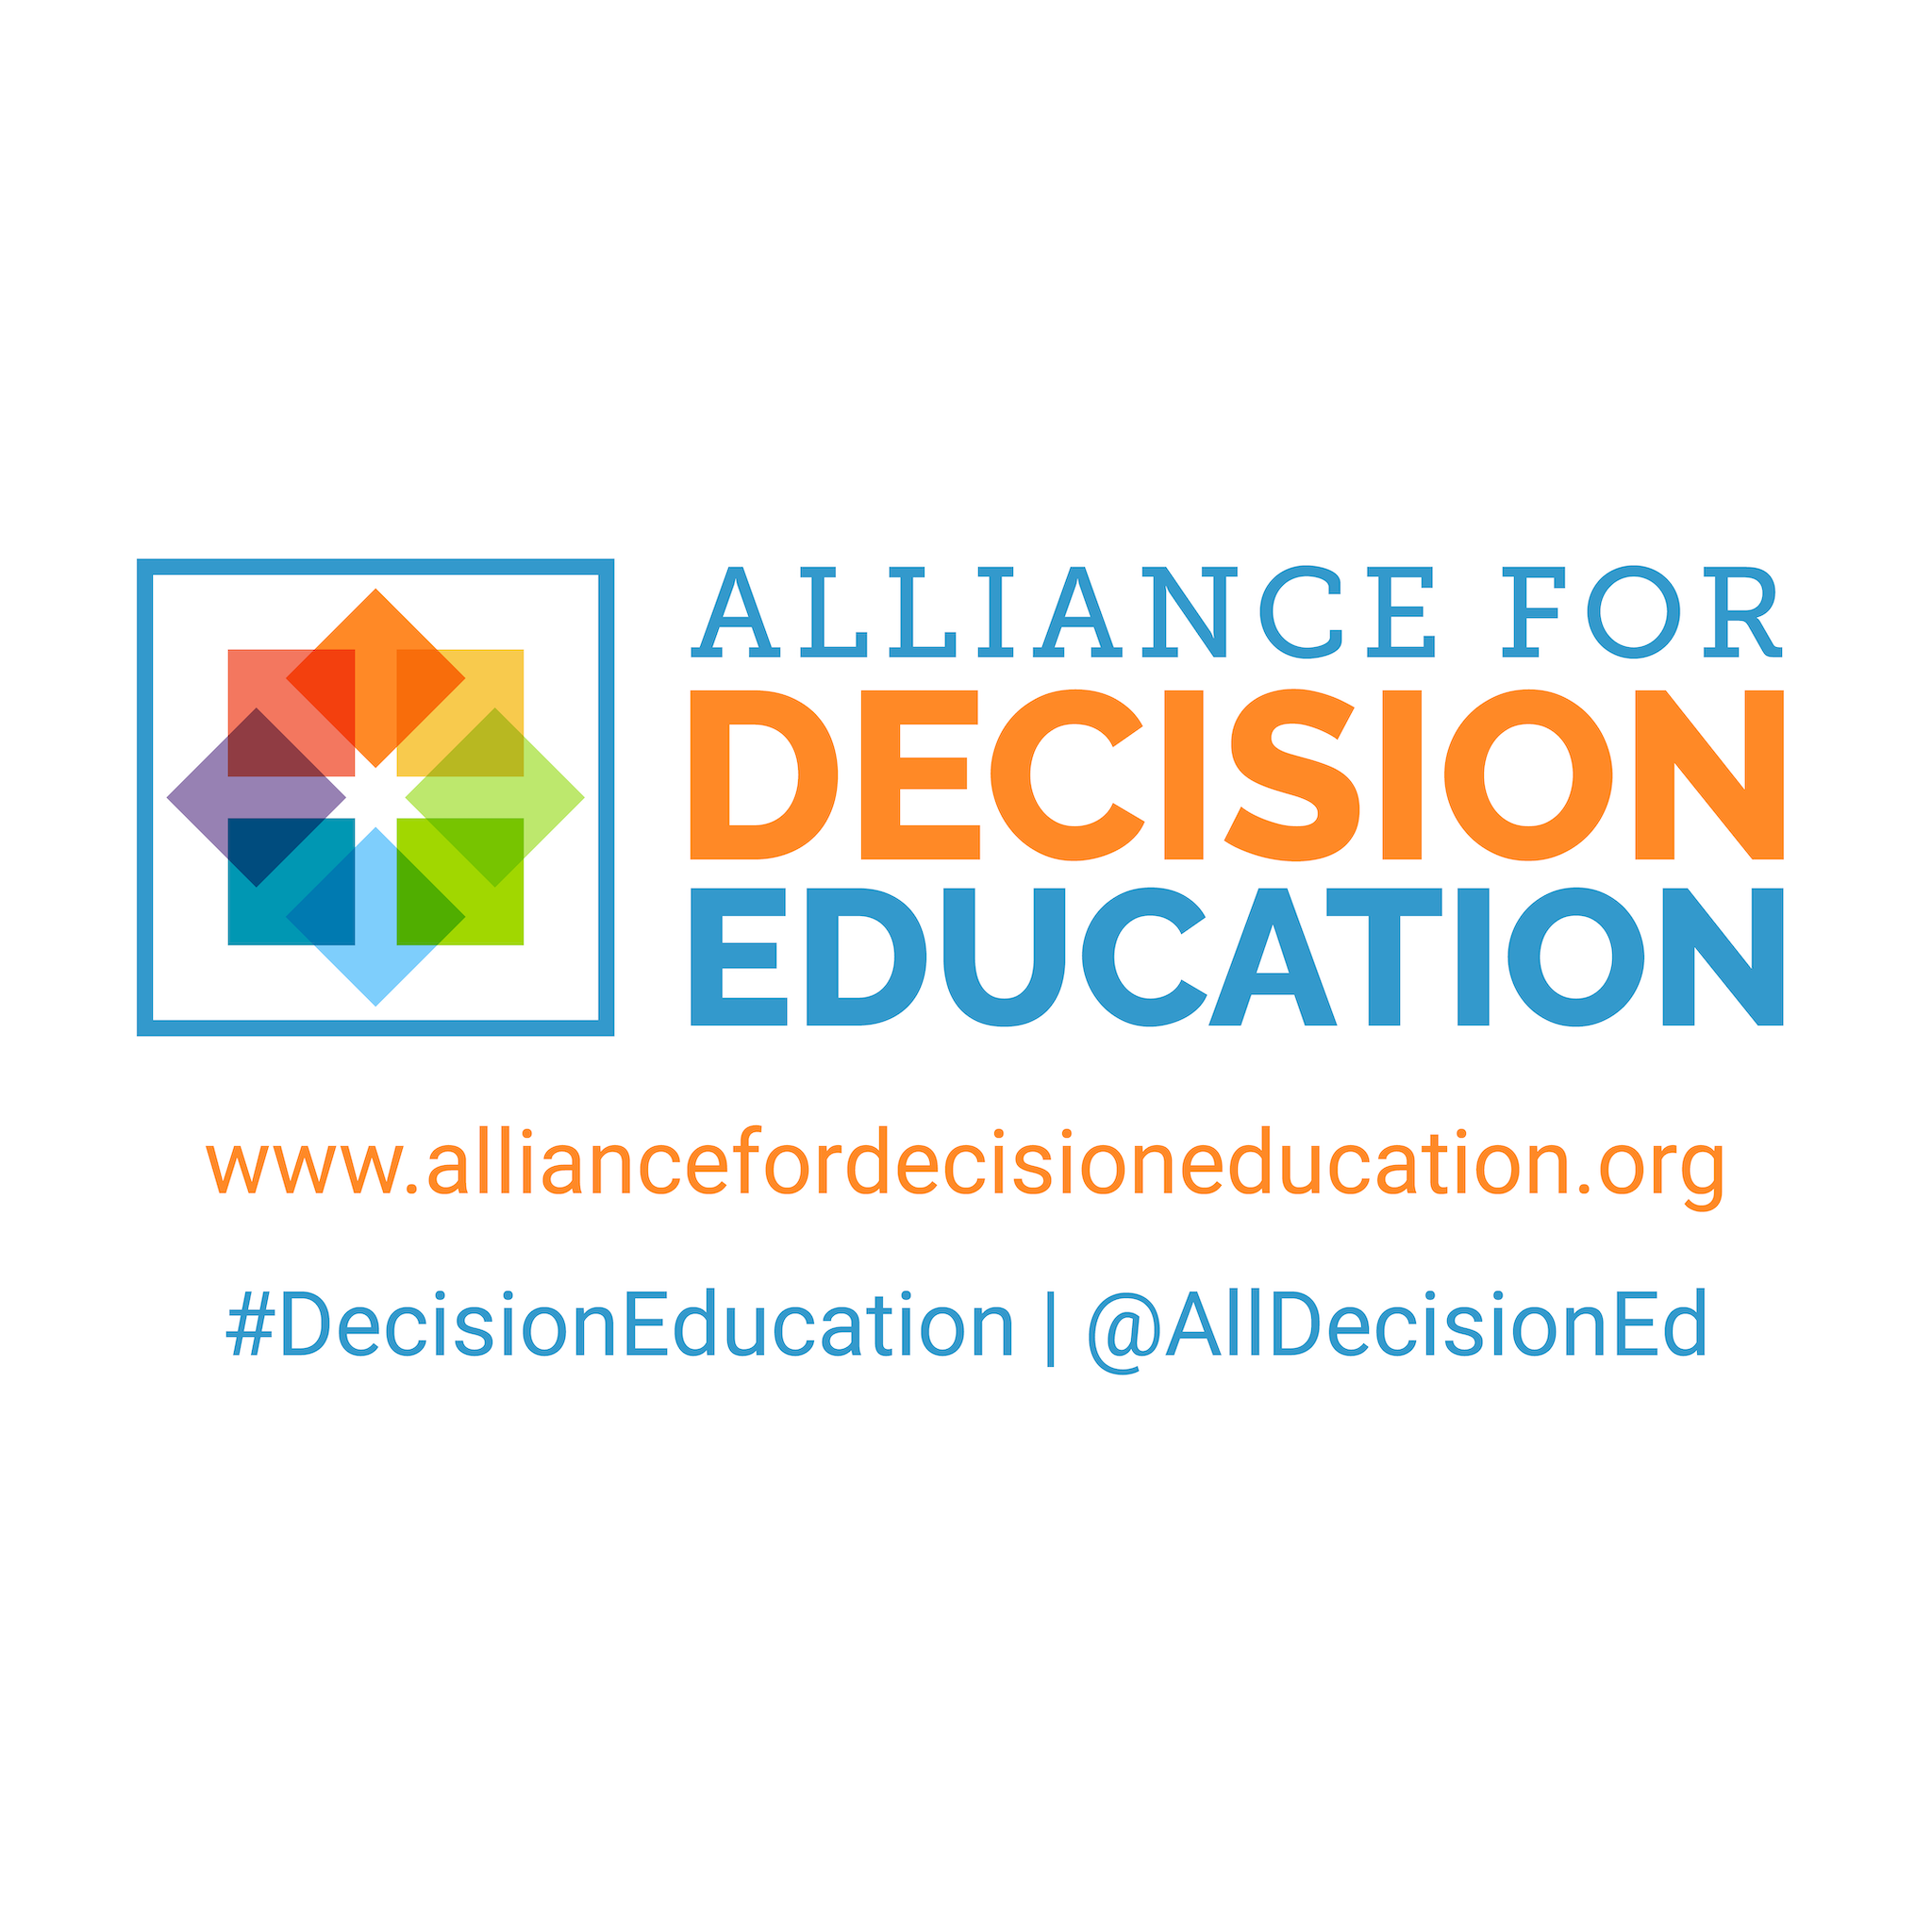 Alliance for Decision Education Instagram Image